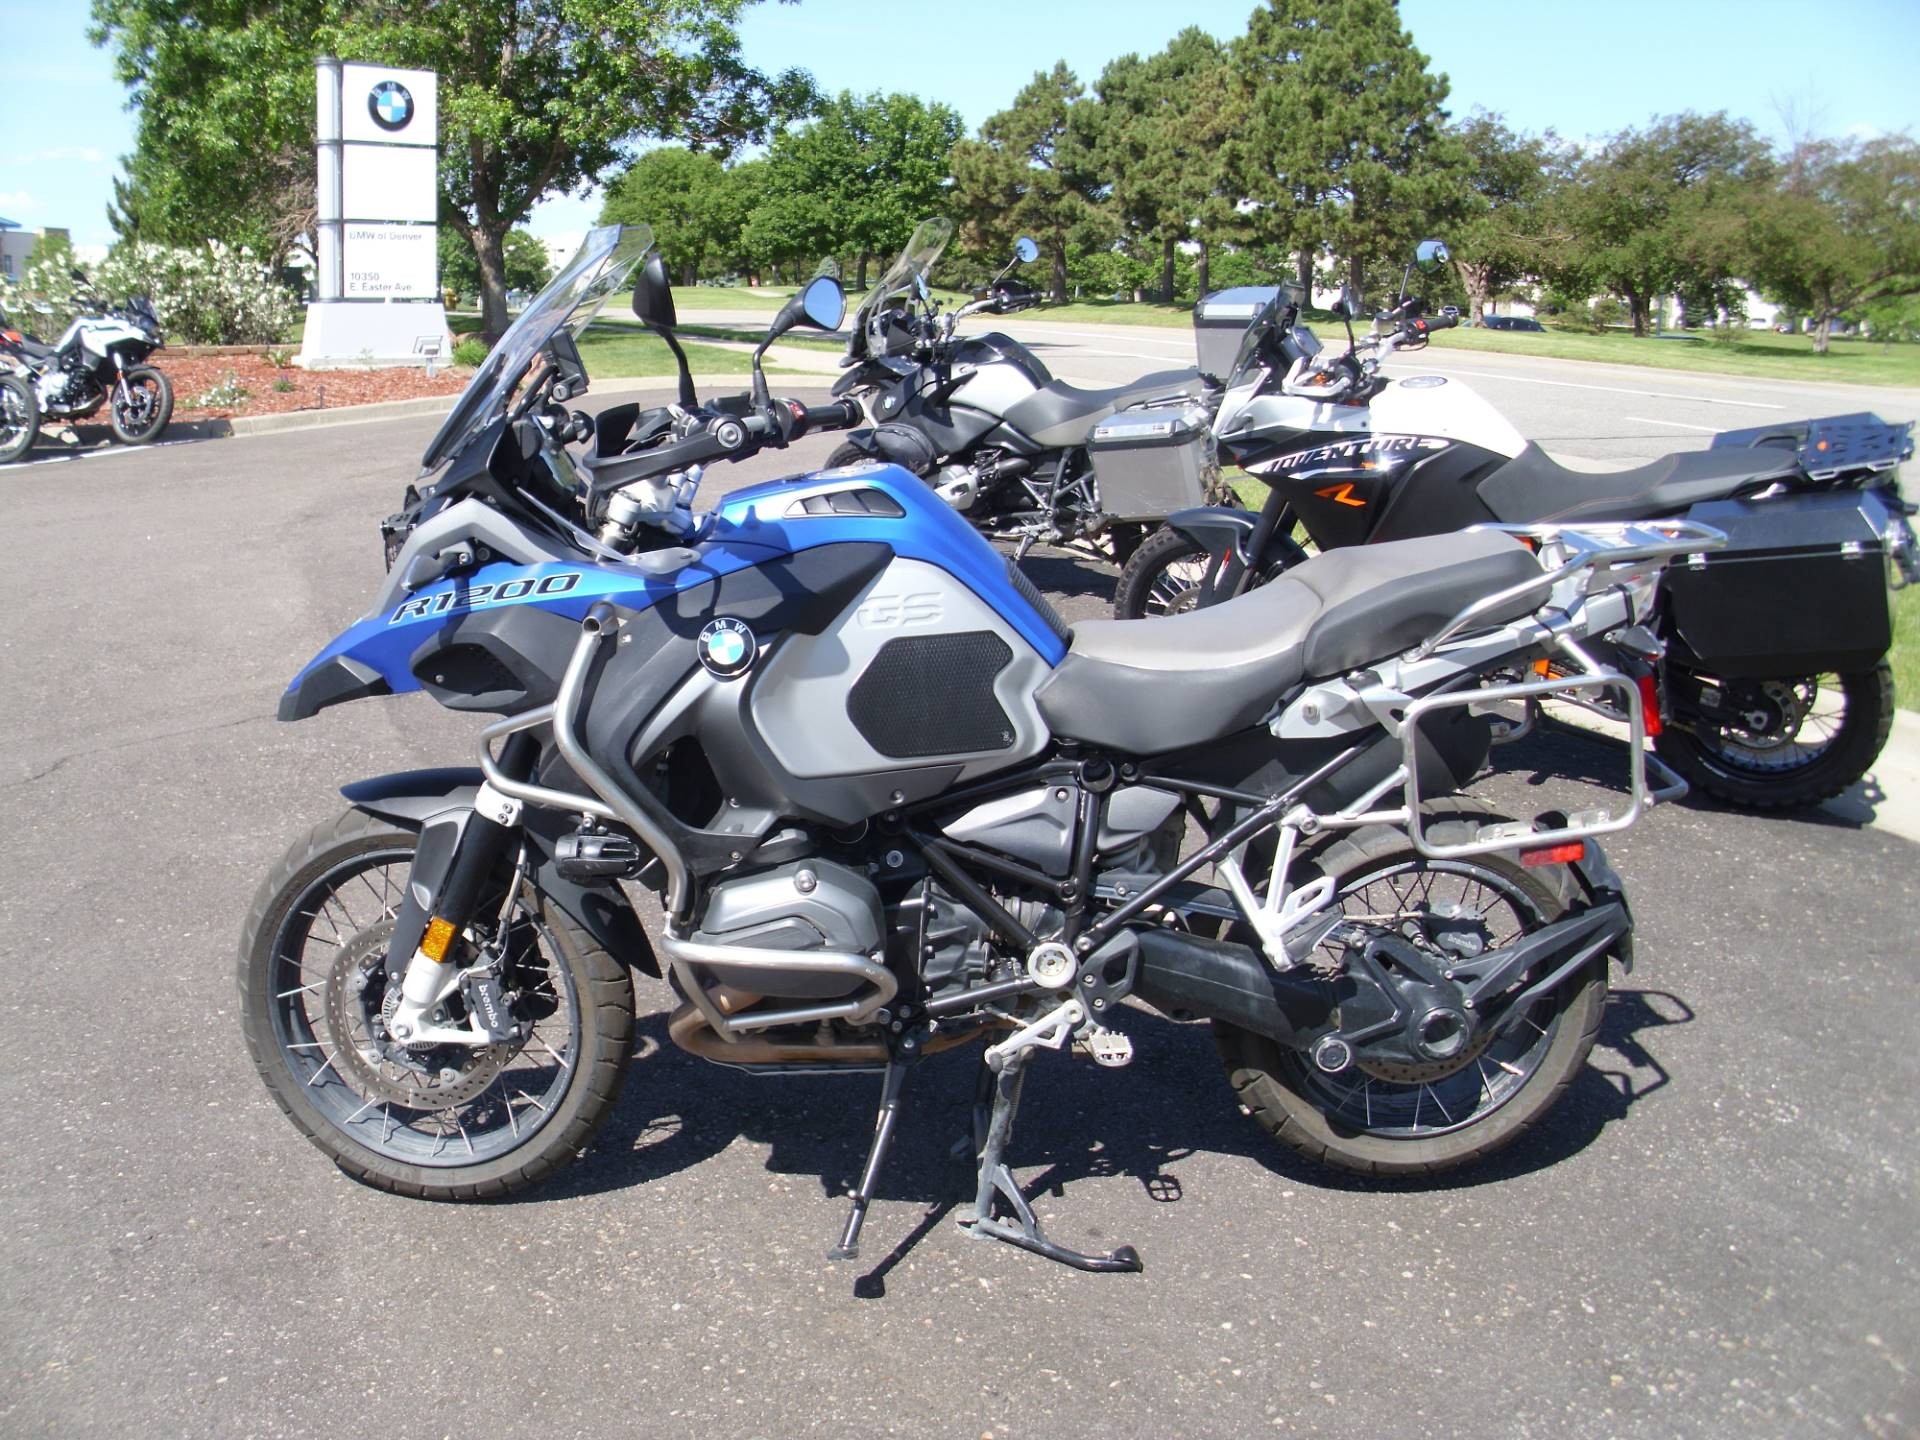 2015 BMW R 1200 GS Adventure in Centennial, Colorado - Photo 1